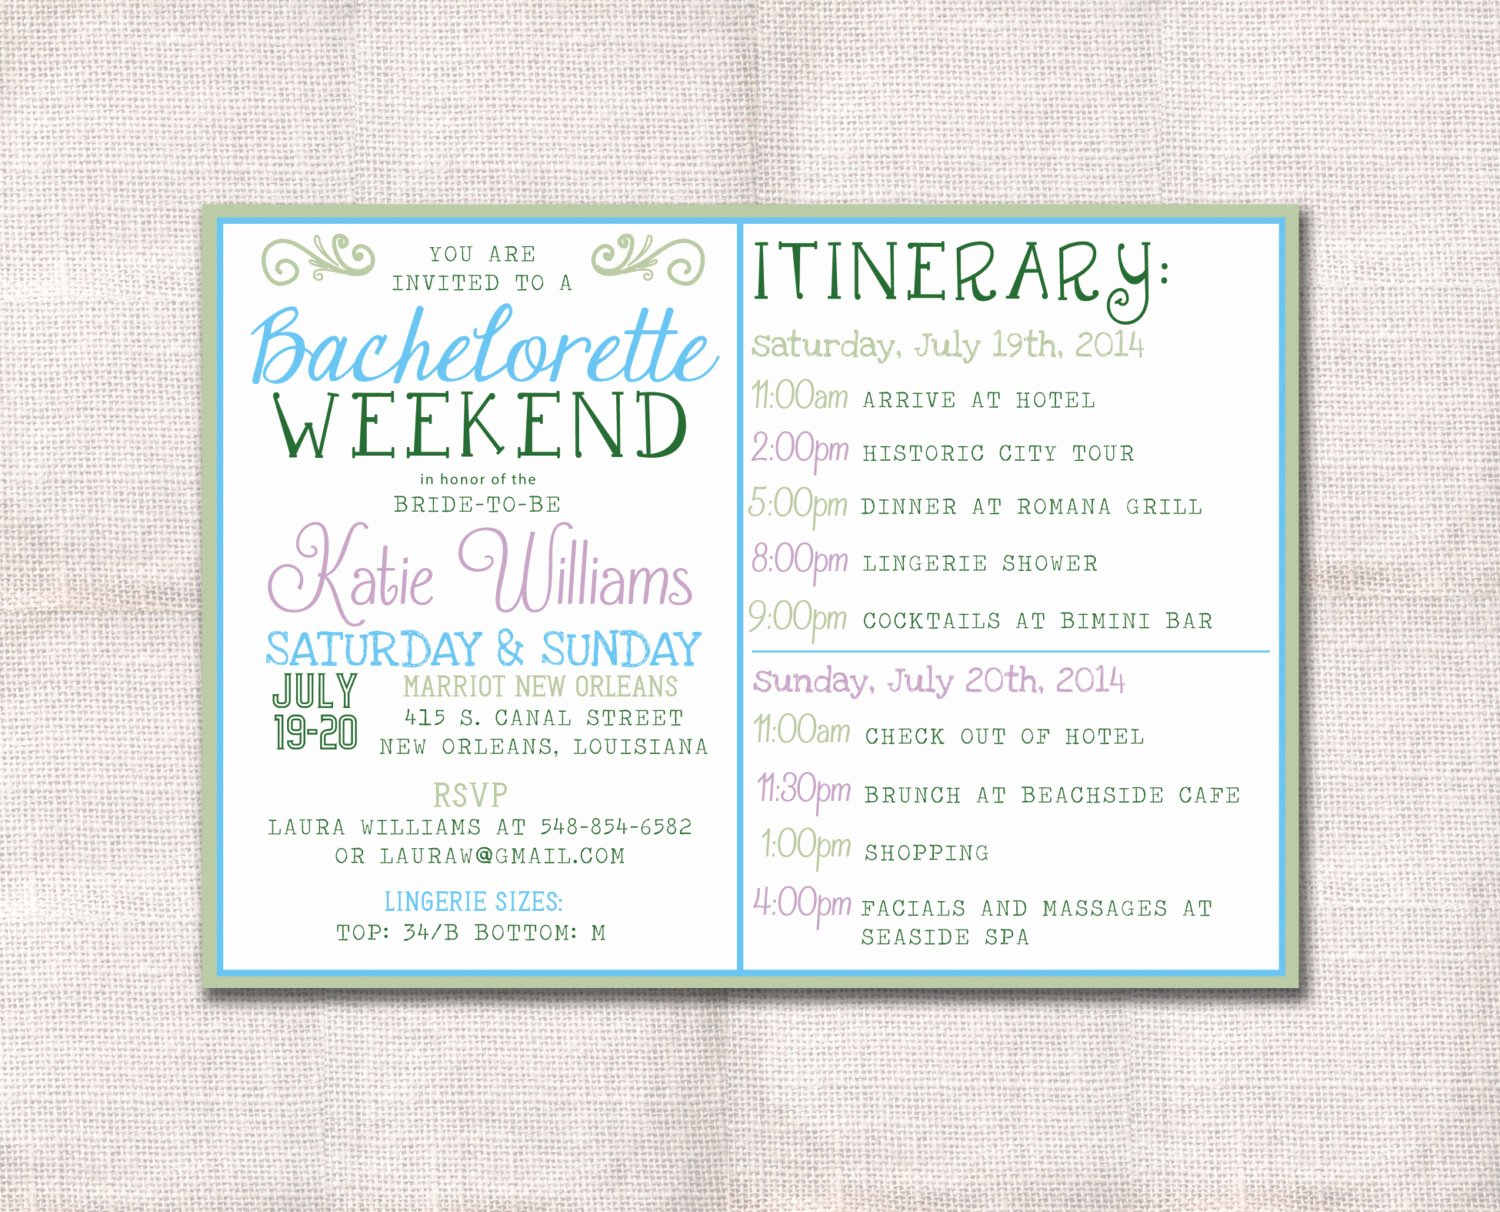 Free Bachelorette Itinerary Template New Bachelorette Party Weekend Invitation and by Darlinbrandopress